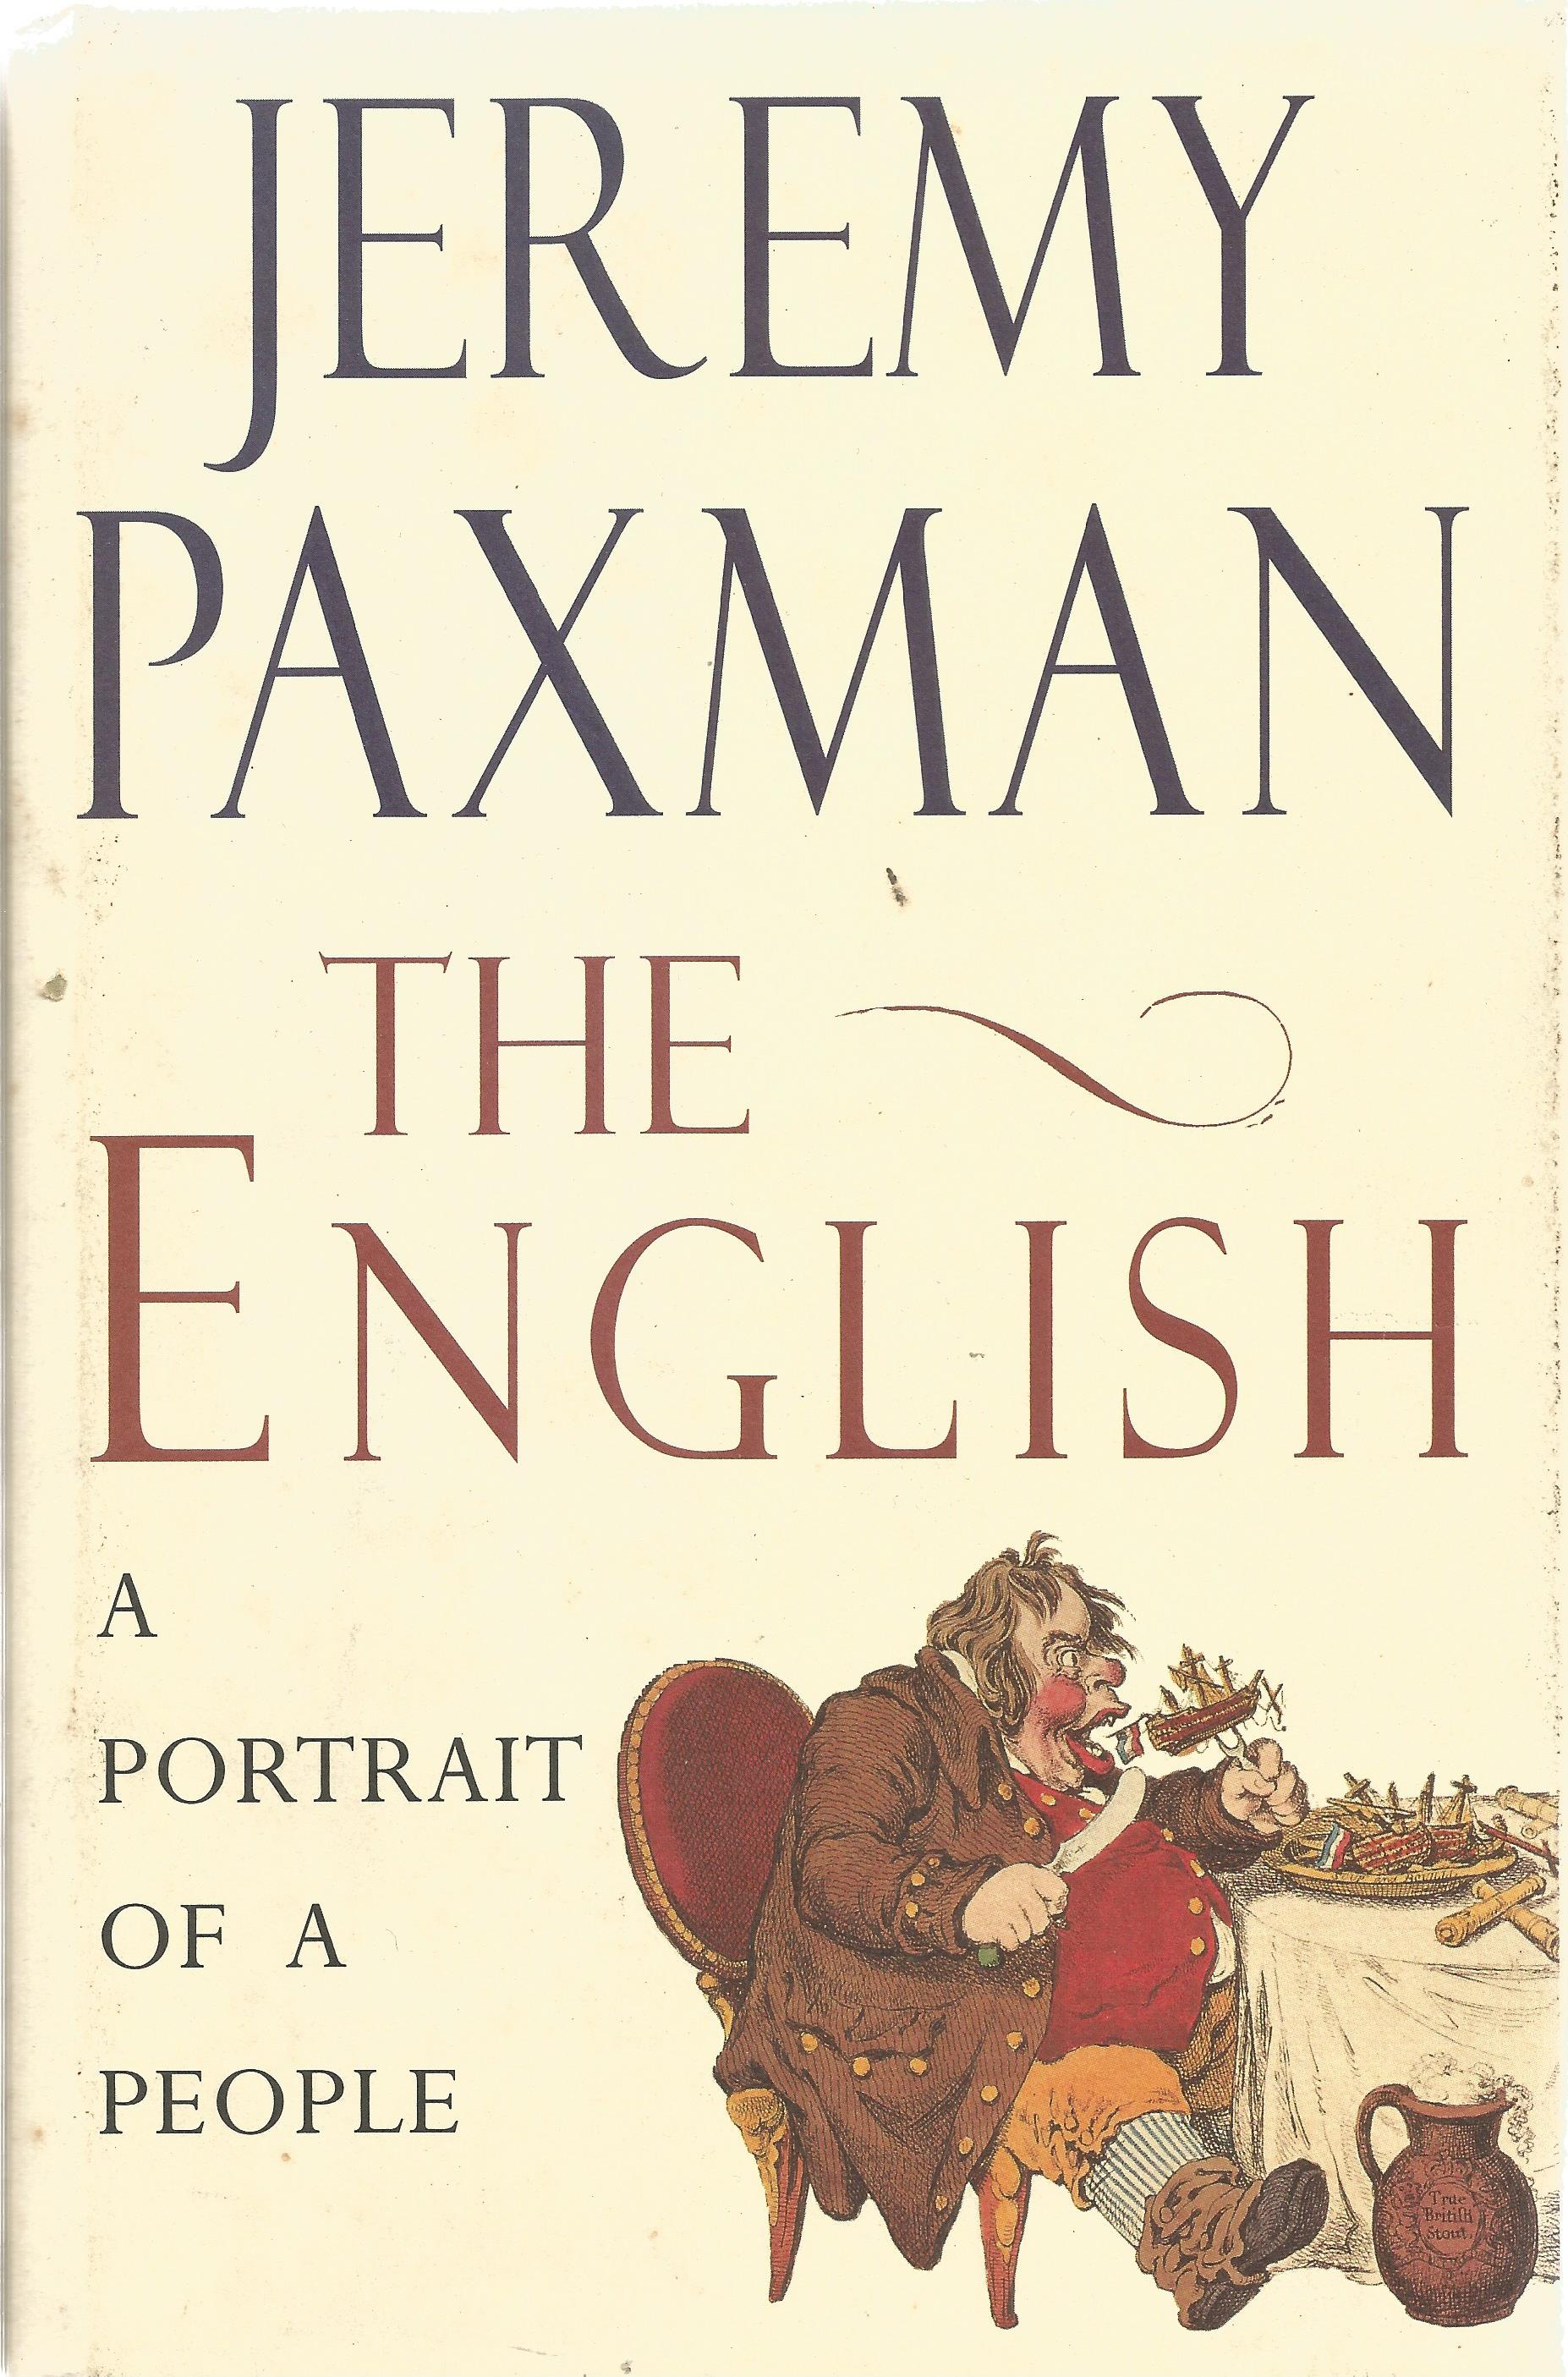 Jeremy Paxman Hardback Book The English A Portrait of People signed by the Author on the Title